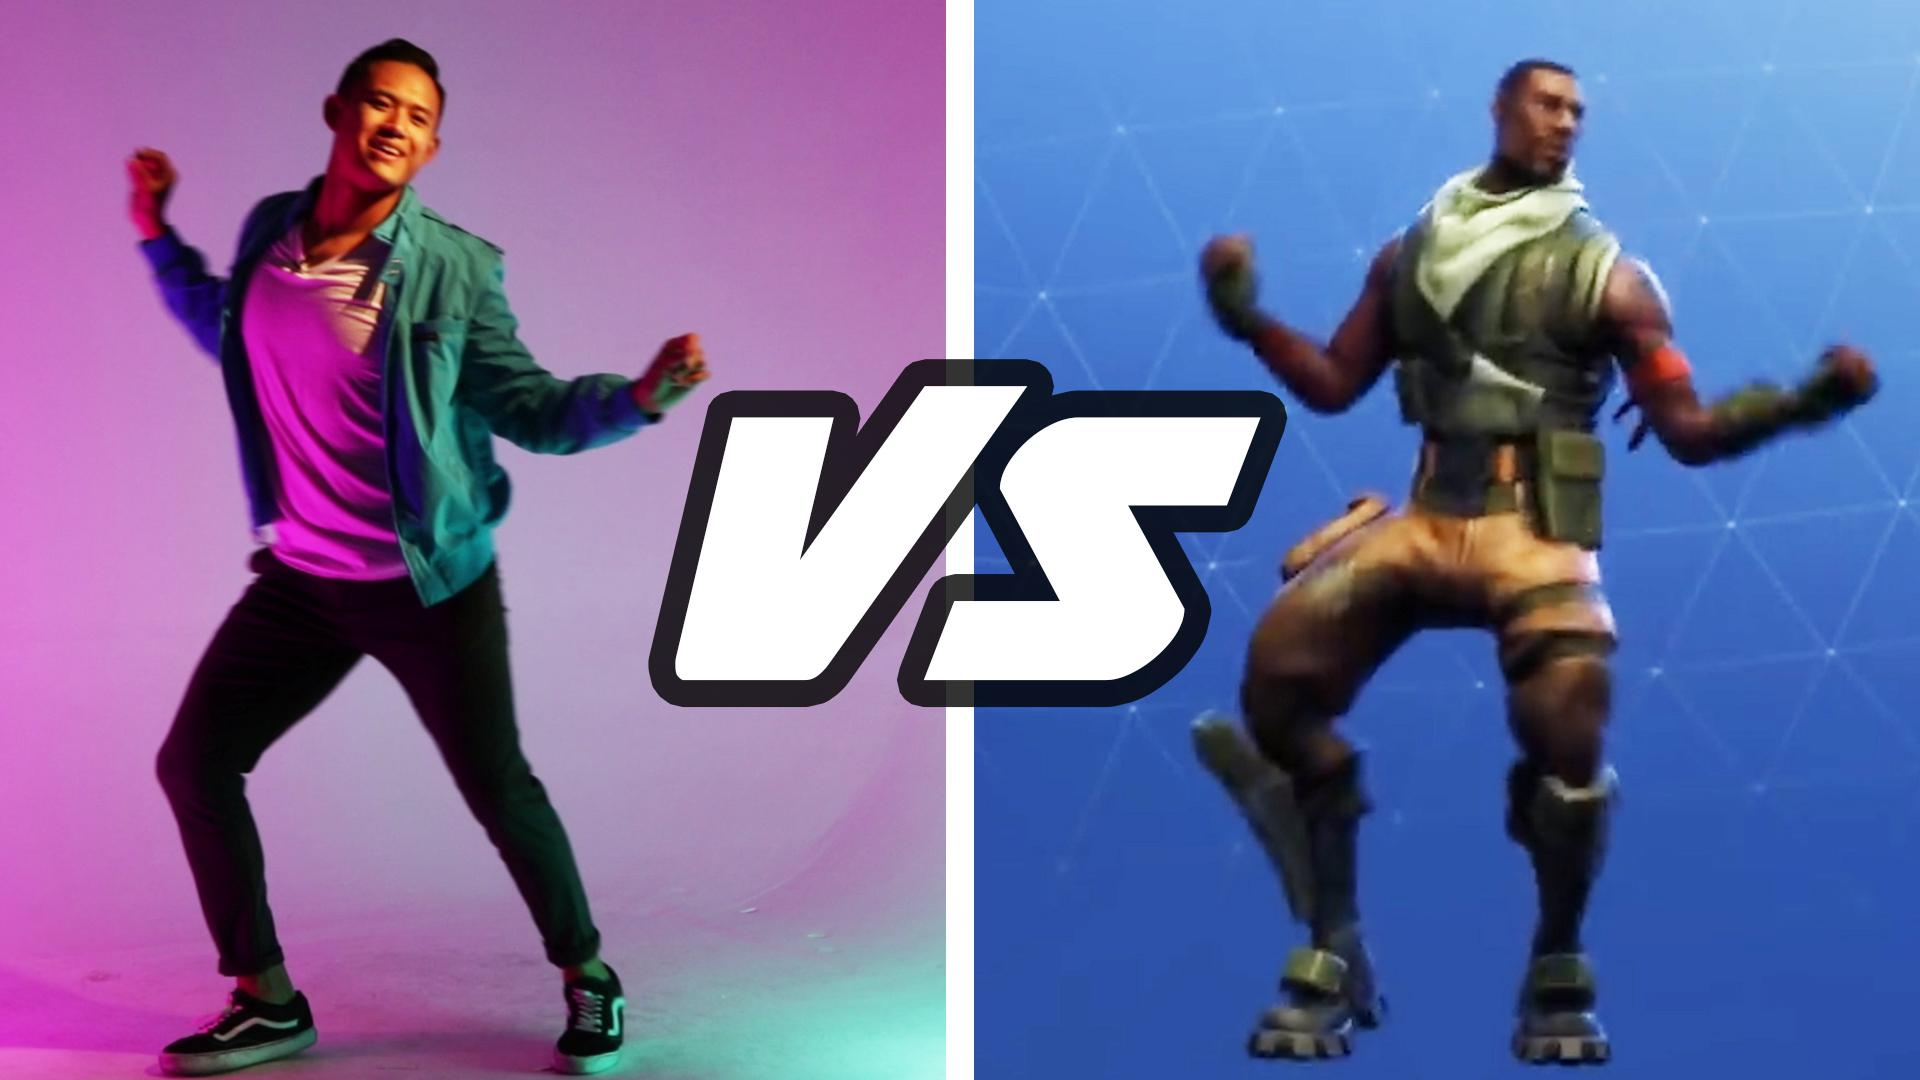 multiplayer by buzzfeed professional dancers try the fortnite dance challenge - buzzfeed fortnite skin quiz